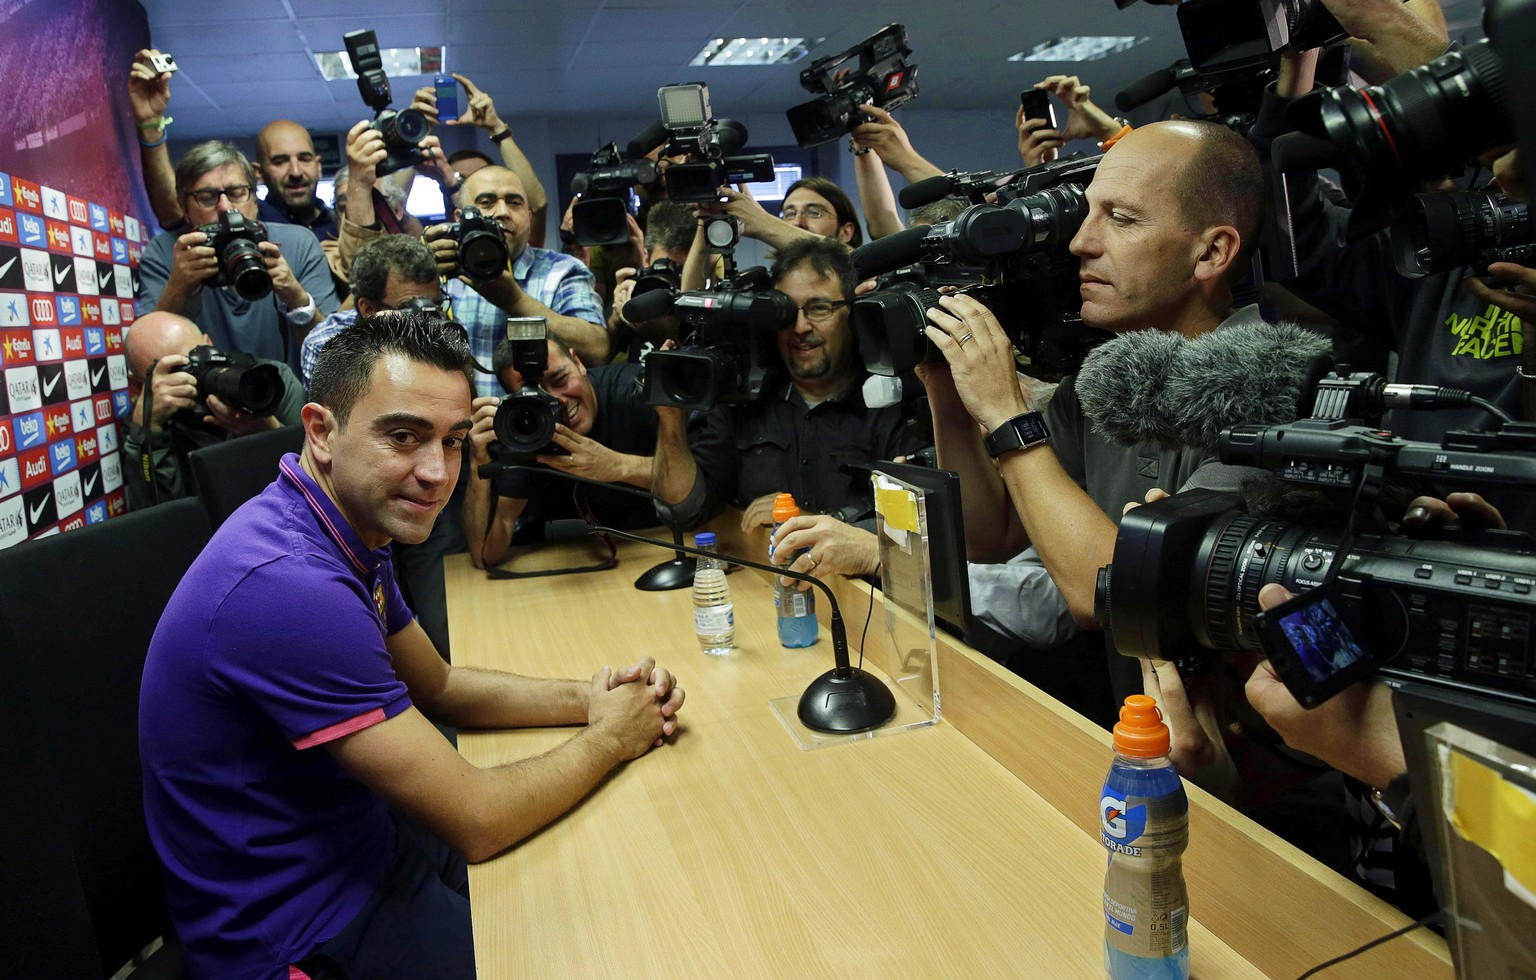 epa04760121 FC Barcelona's captain Xavi Hernandez (L) attends a press conference to announces his departure from Spanish champions FC Barcelona at the end of the season in Barcelona, northeastern Spain, 21 May 2015. Xavi will join Qatar's Al-Sadd Sports Club after playing 17 seasons for Barca.  EPA/ALBERTO ESTEVEZ